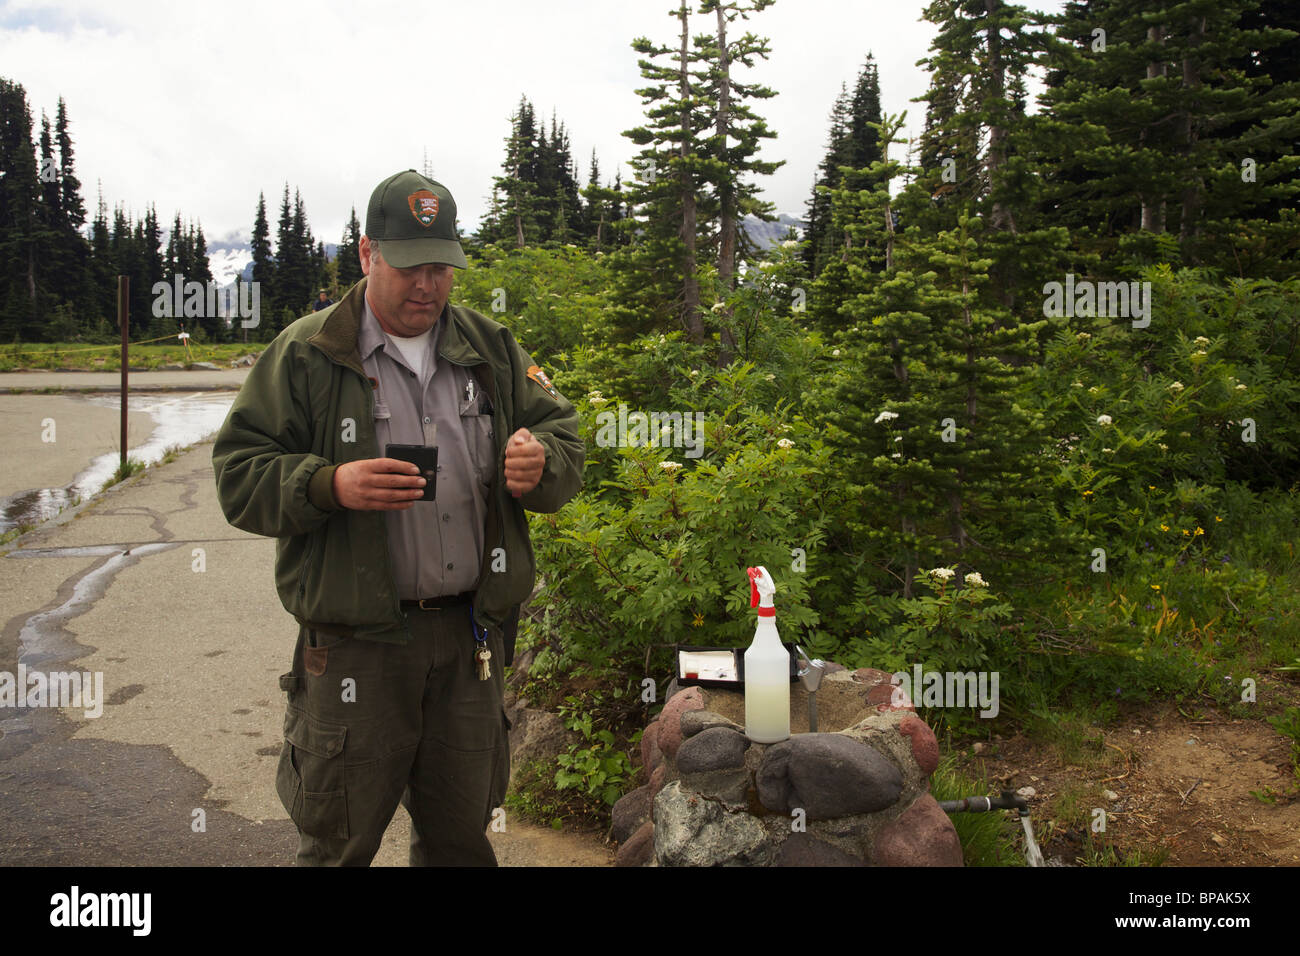 Park worker testing water fountain quality. Mount Rainier National Park, Washington. - Stock Image